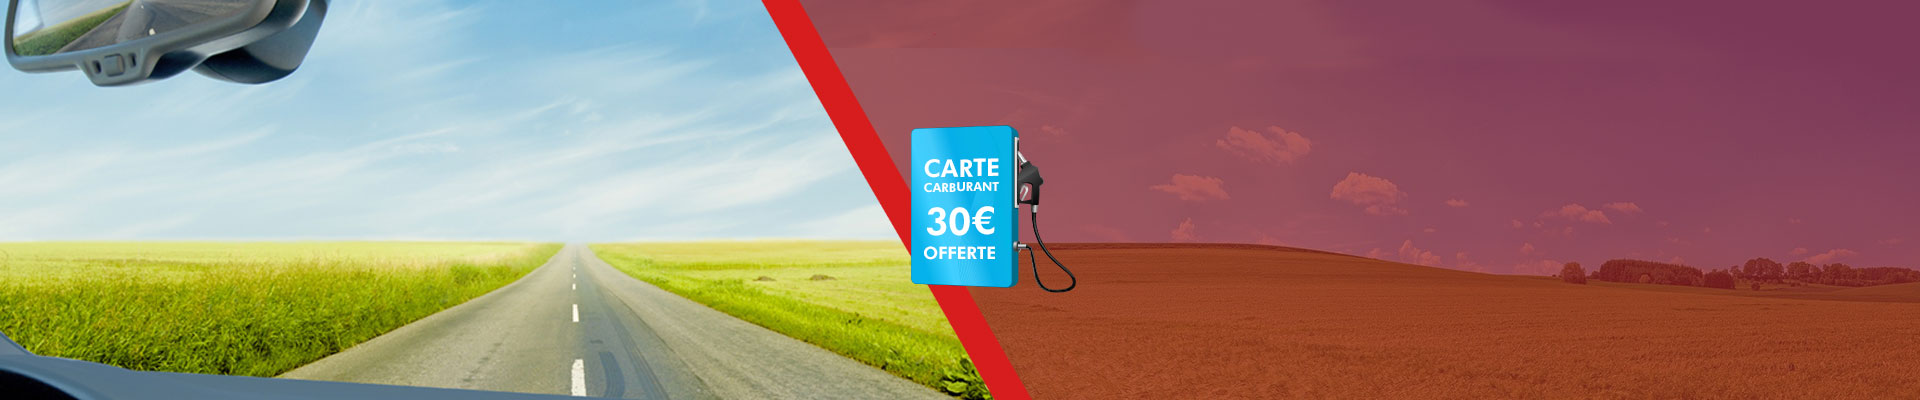 Offre Carte Carburant 30 euros